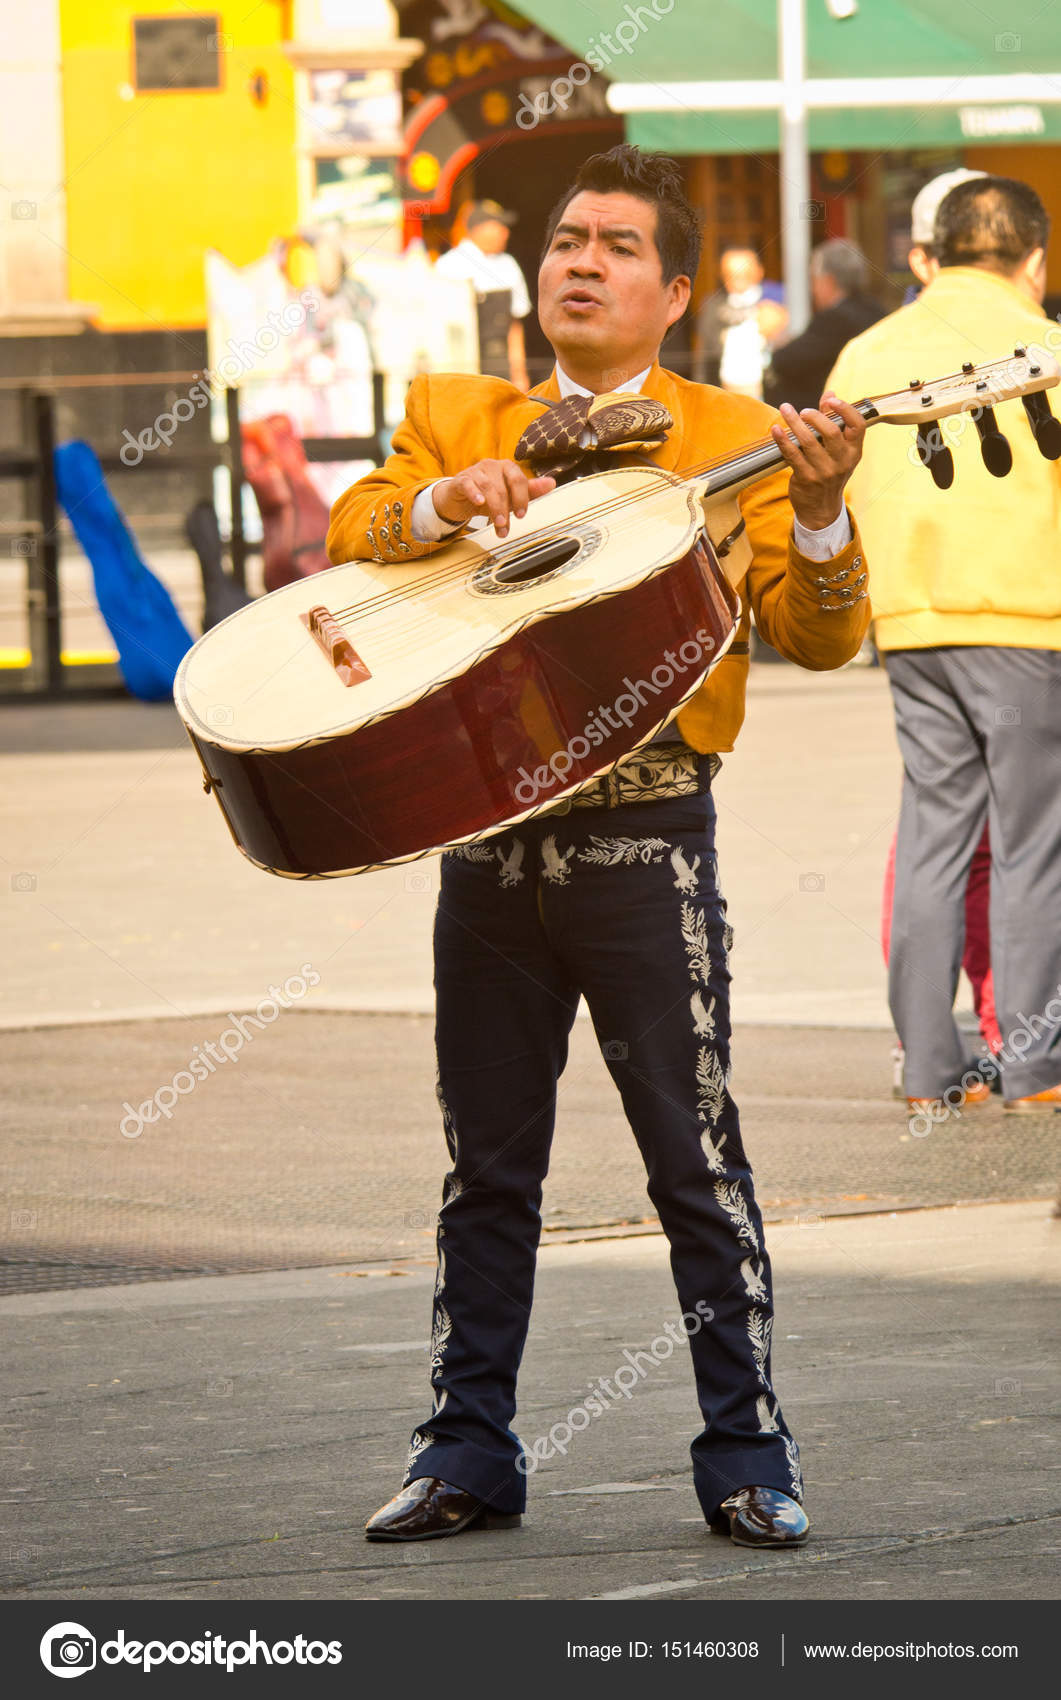 Mariachi band play mexican music – Stock Editorial Photo